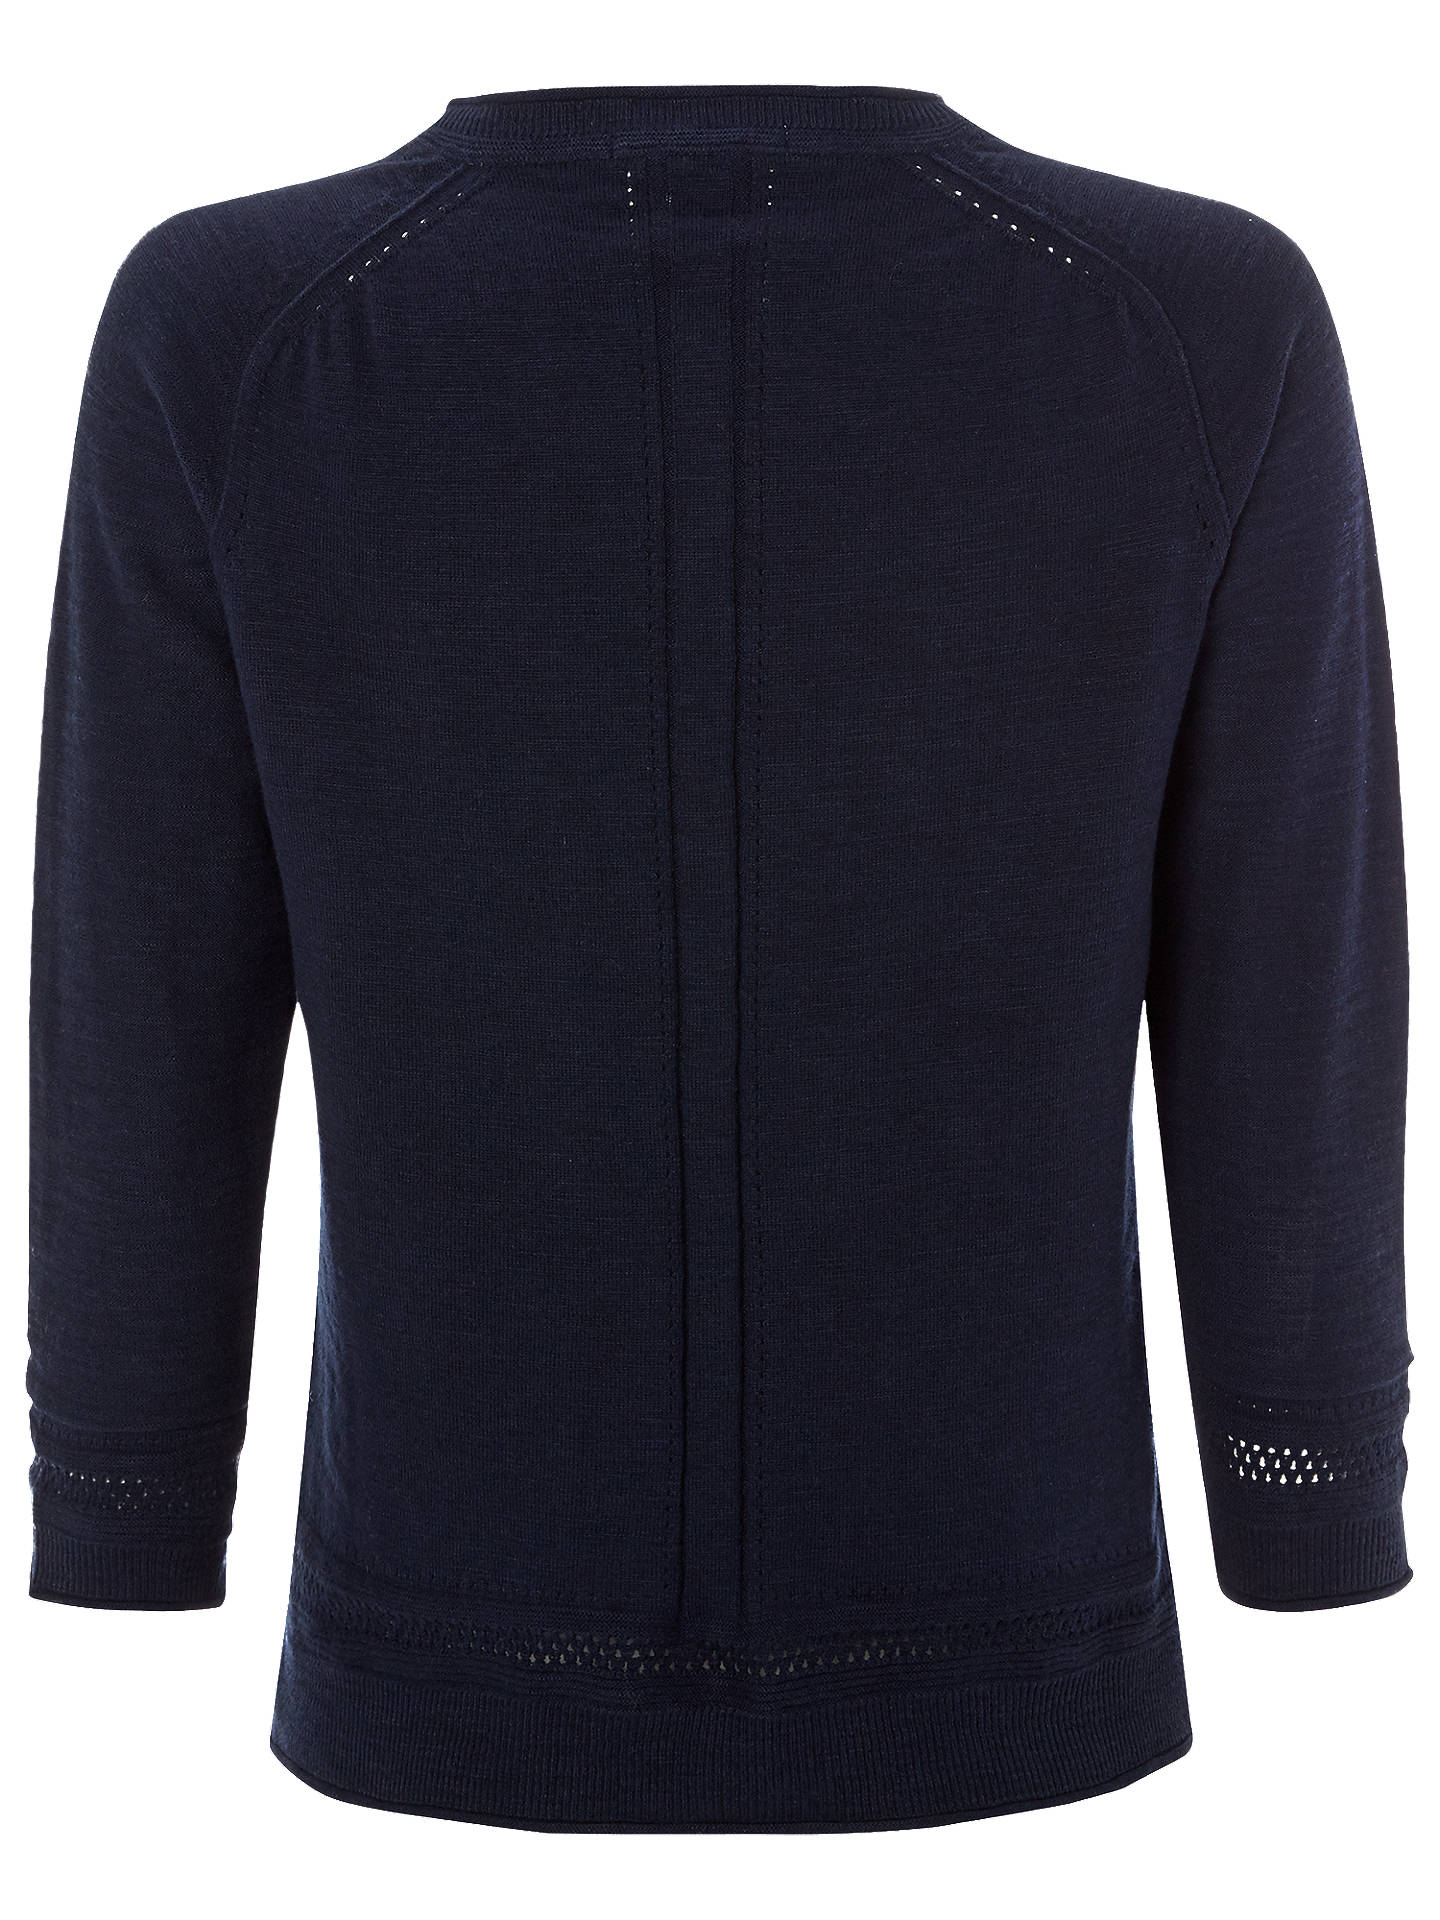 BuyWhite Stuff Palm Cotton Button Cardigan, Navy, 6 Online at johnlewis.com